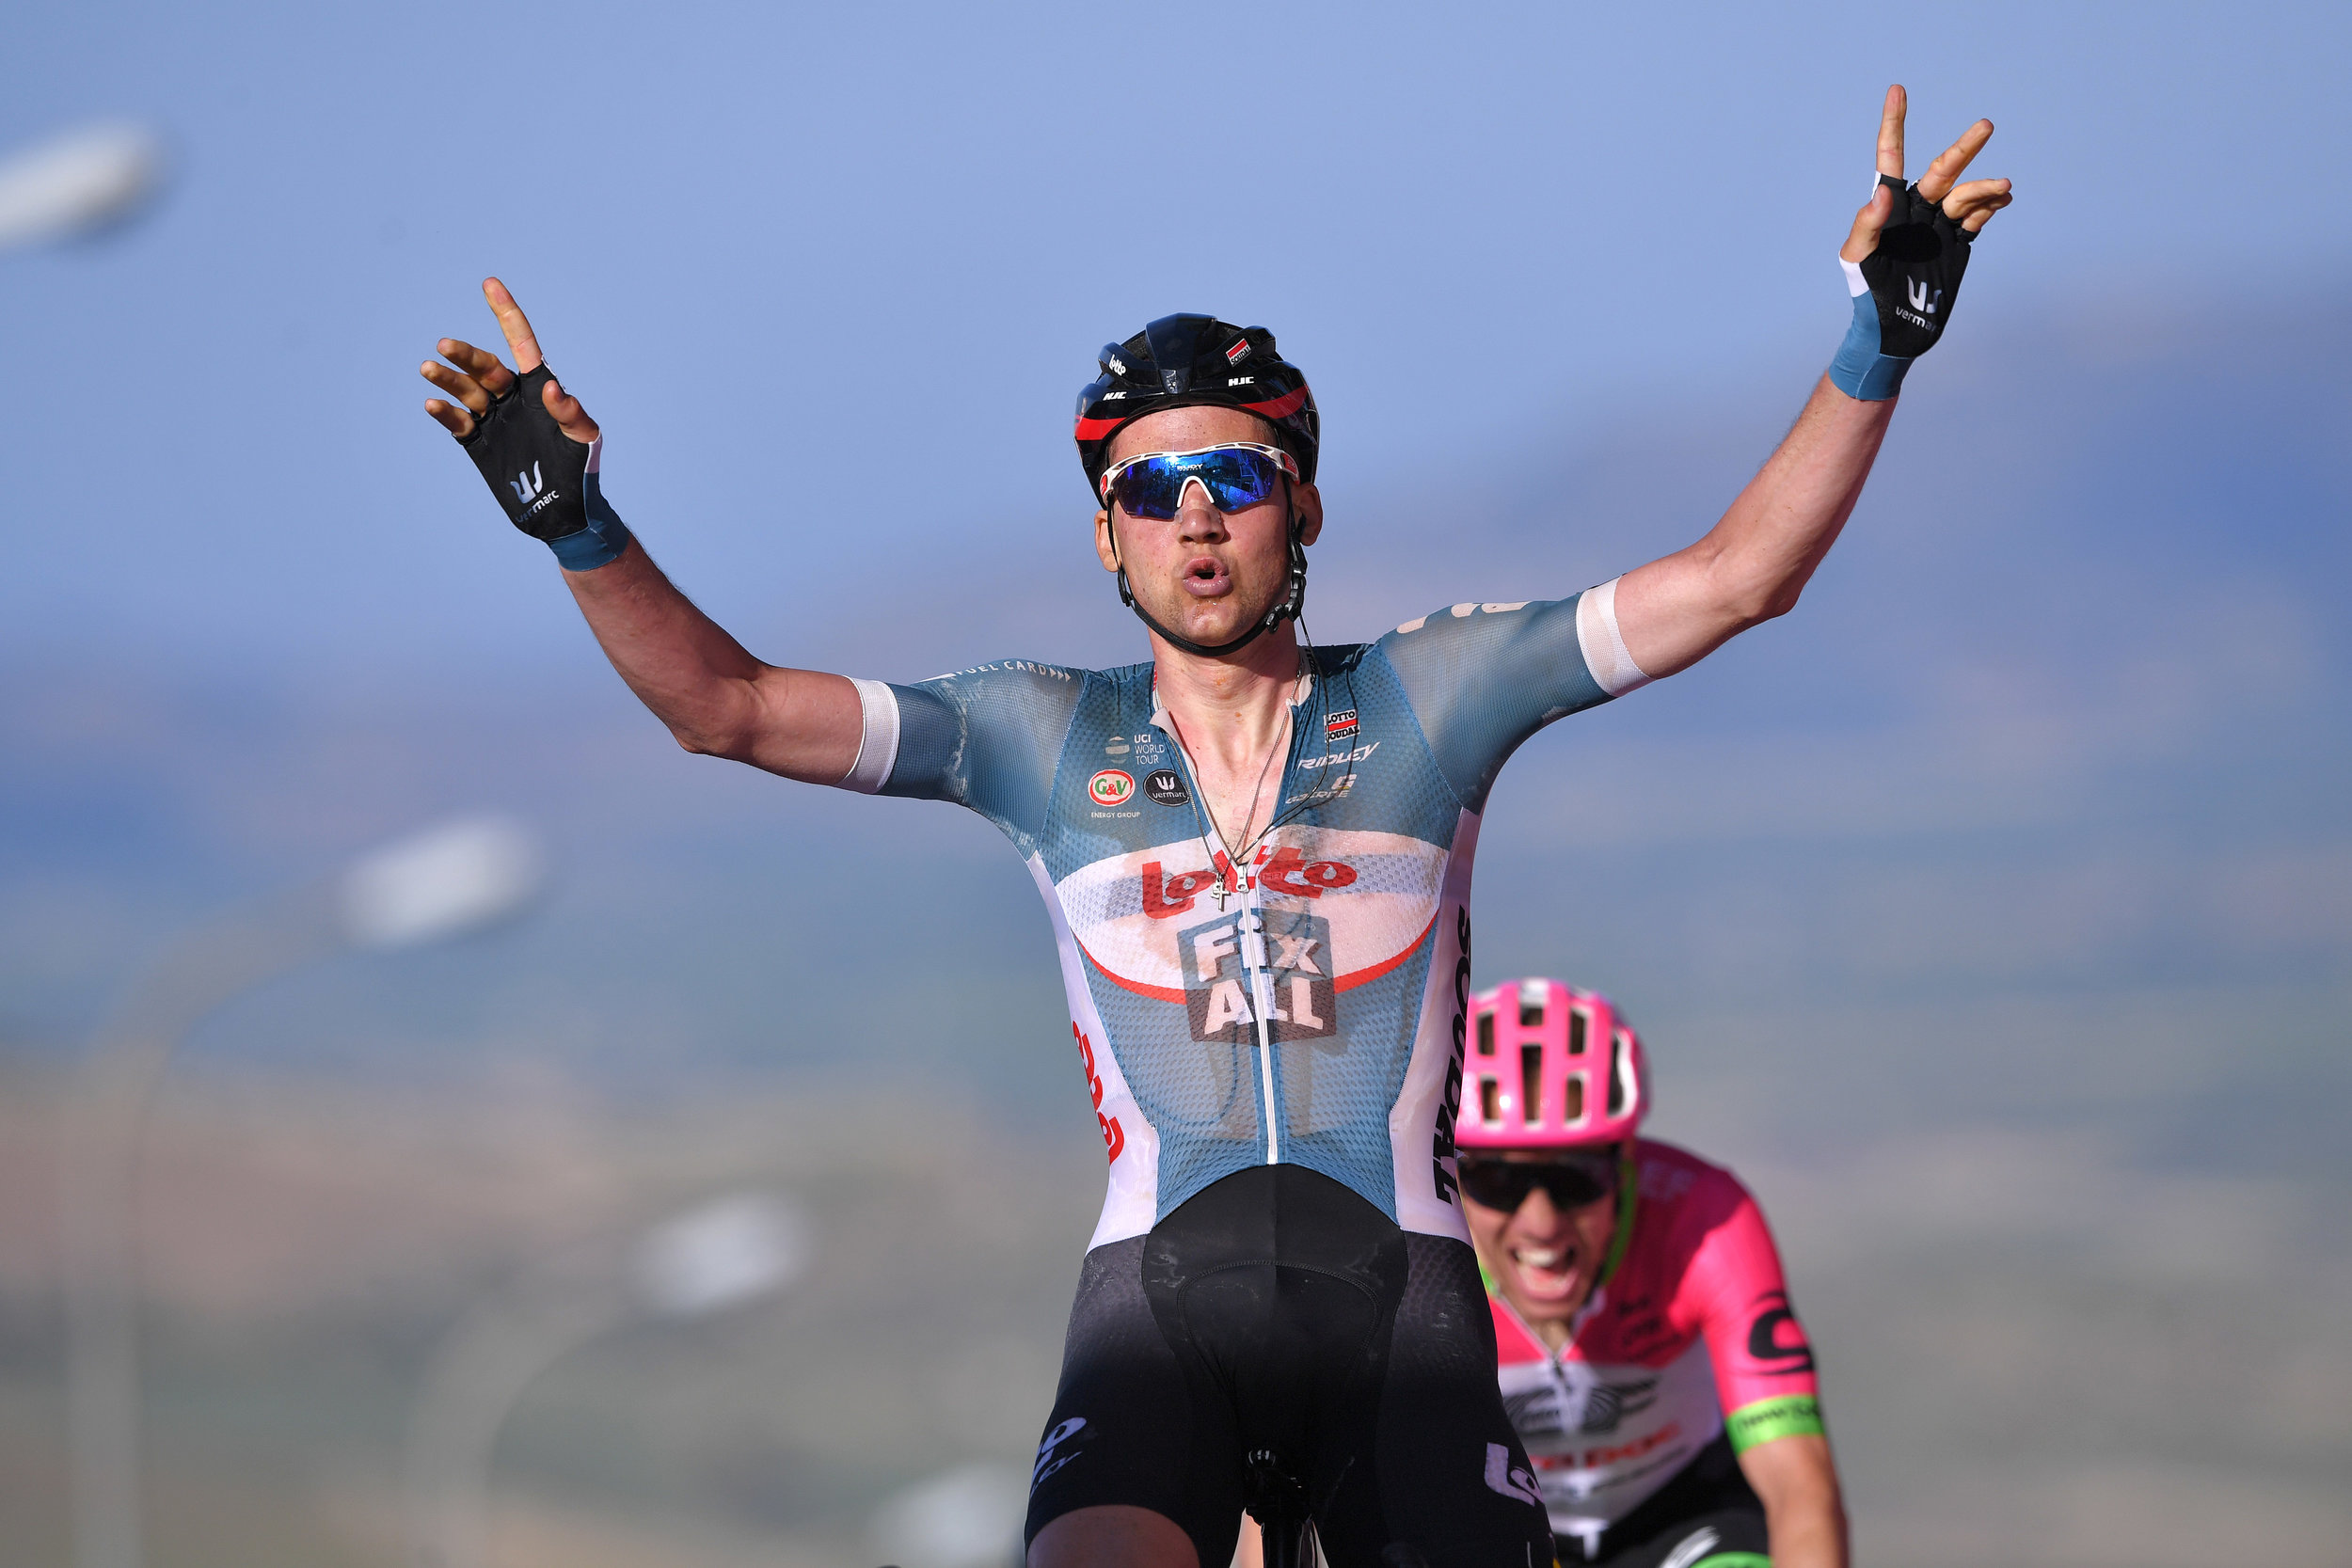 Celebrating a Giro d'Italia stage win in 2018 (Getty Images)